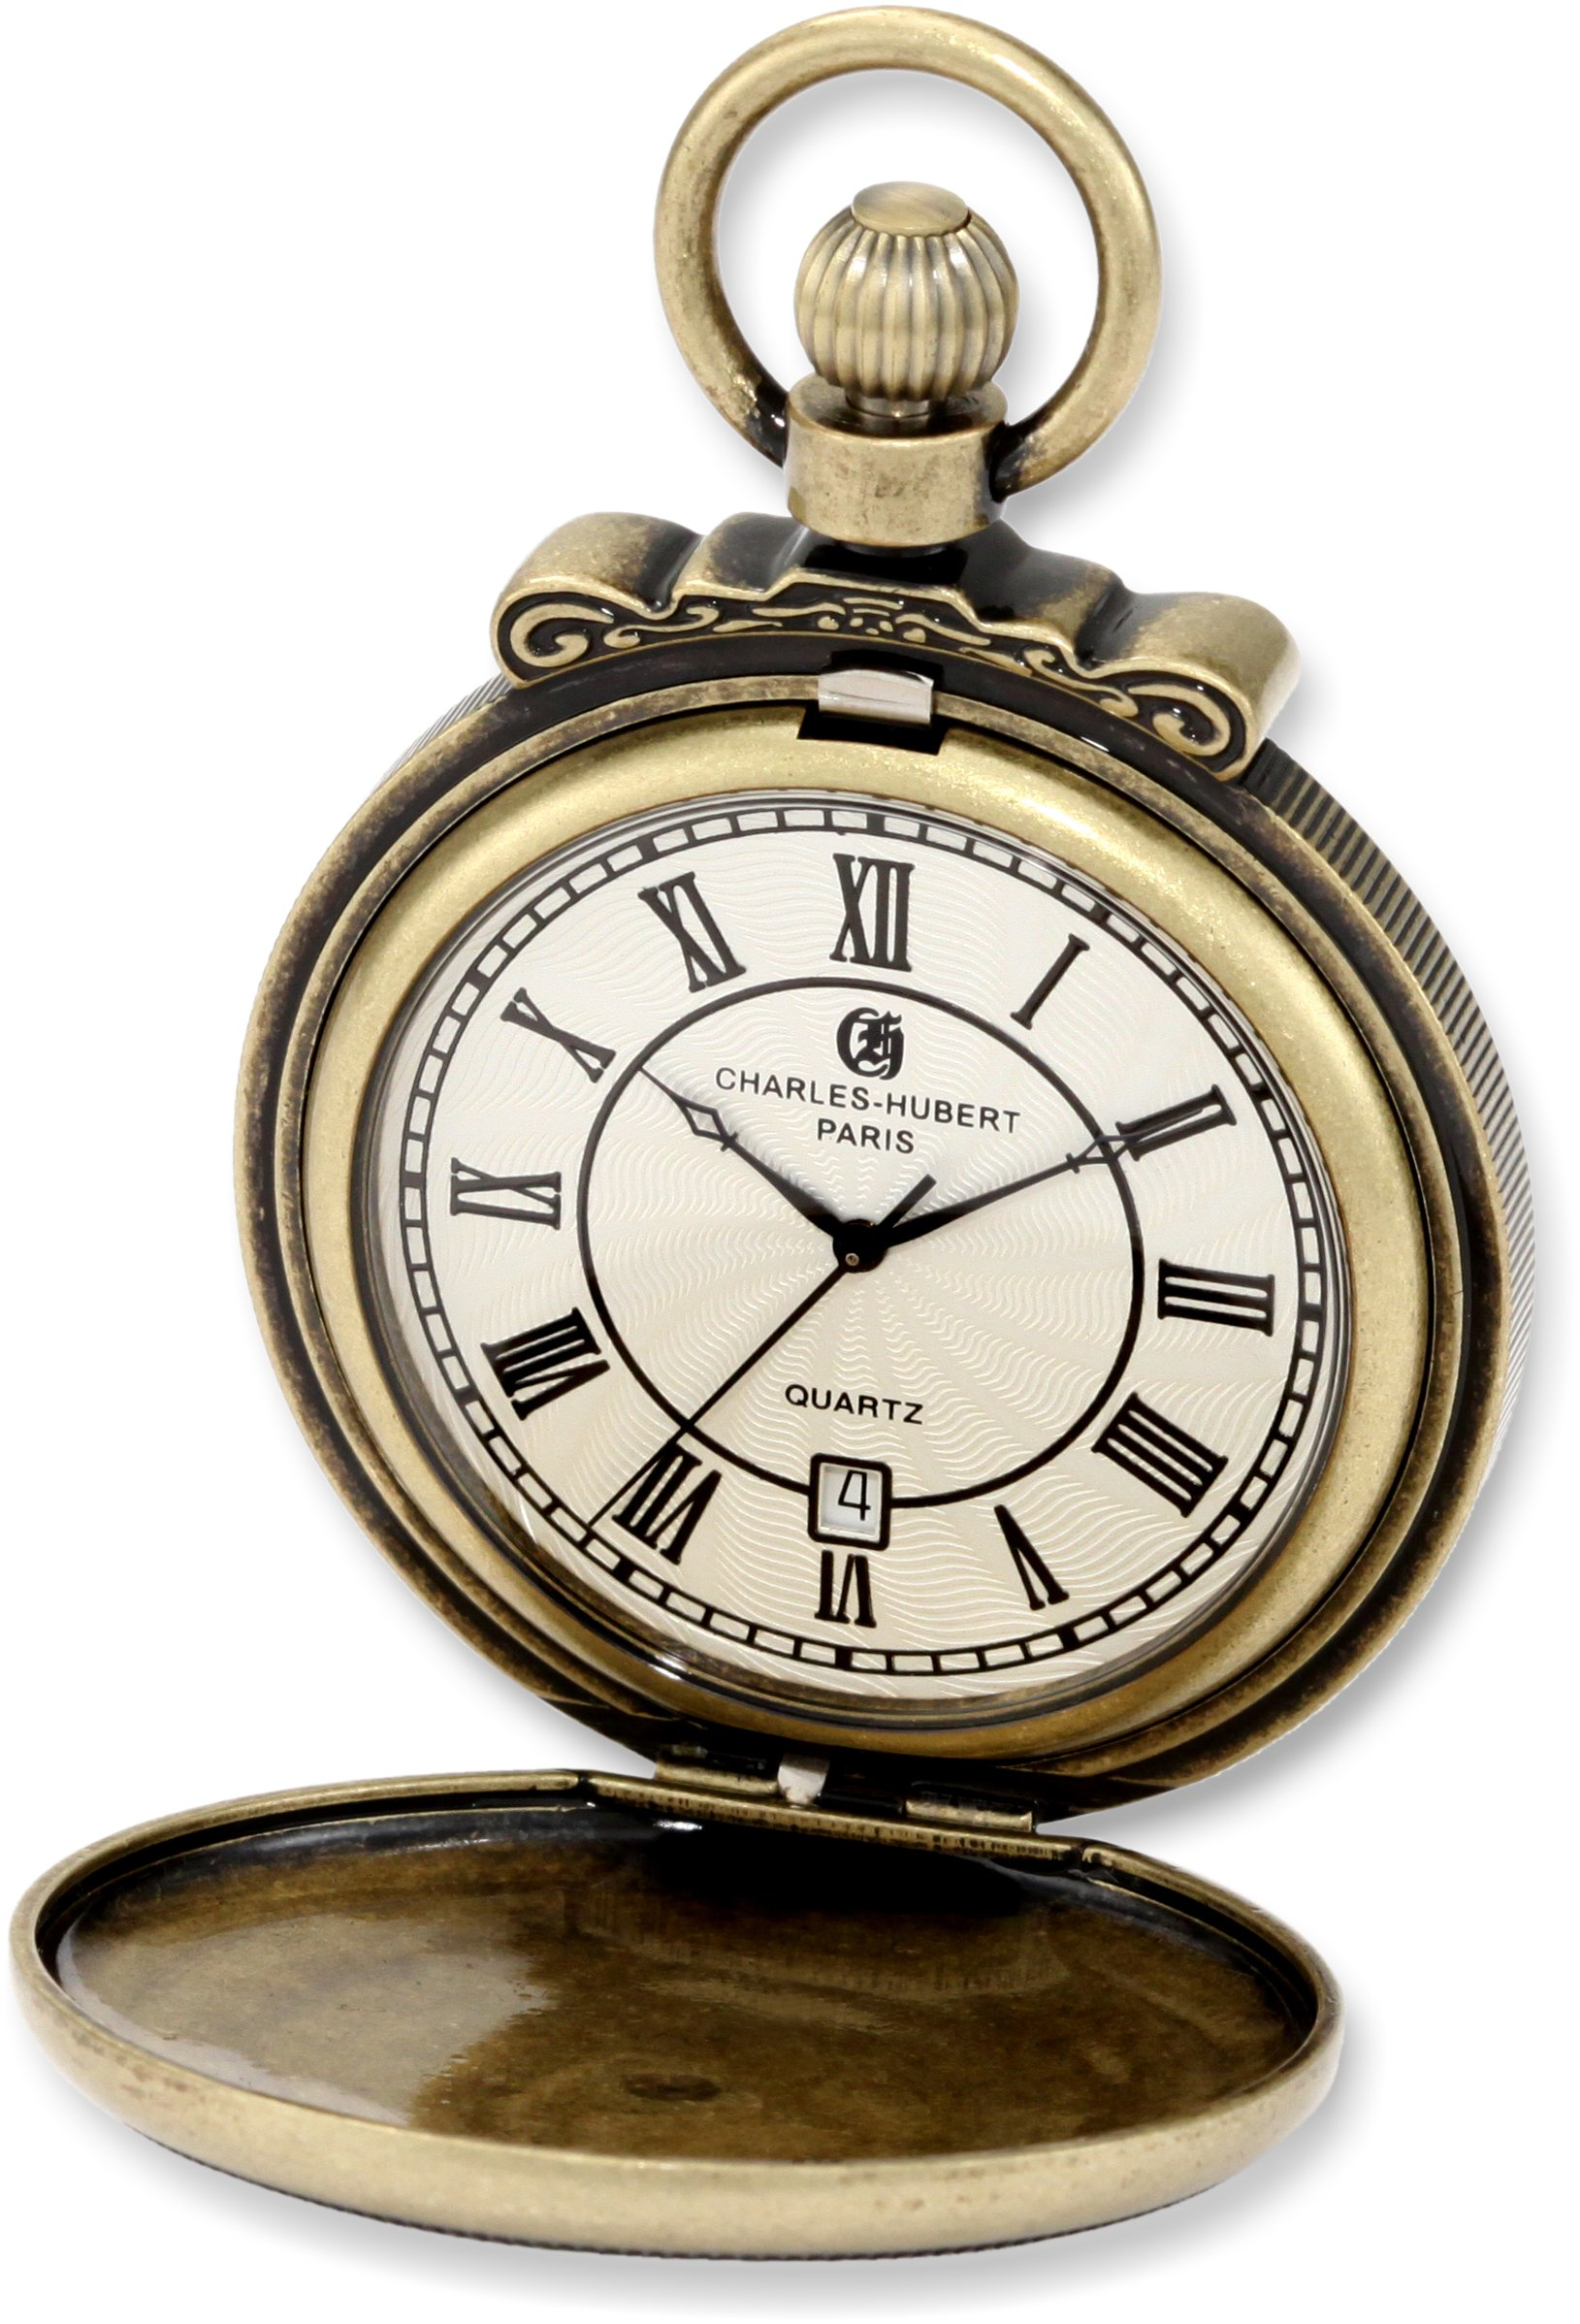 Charles-Hubert Paris 3863-G Classic Gold-Plated Antiqued Finish Quartz Pocket Watch